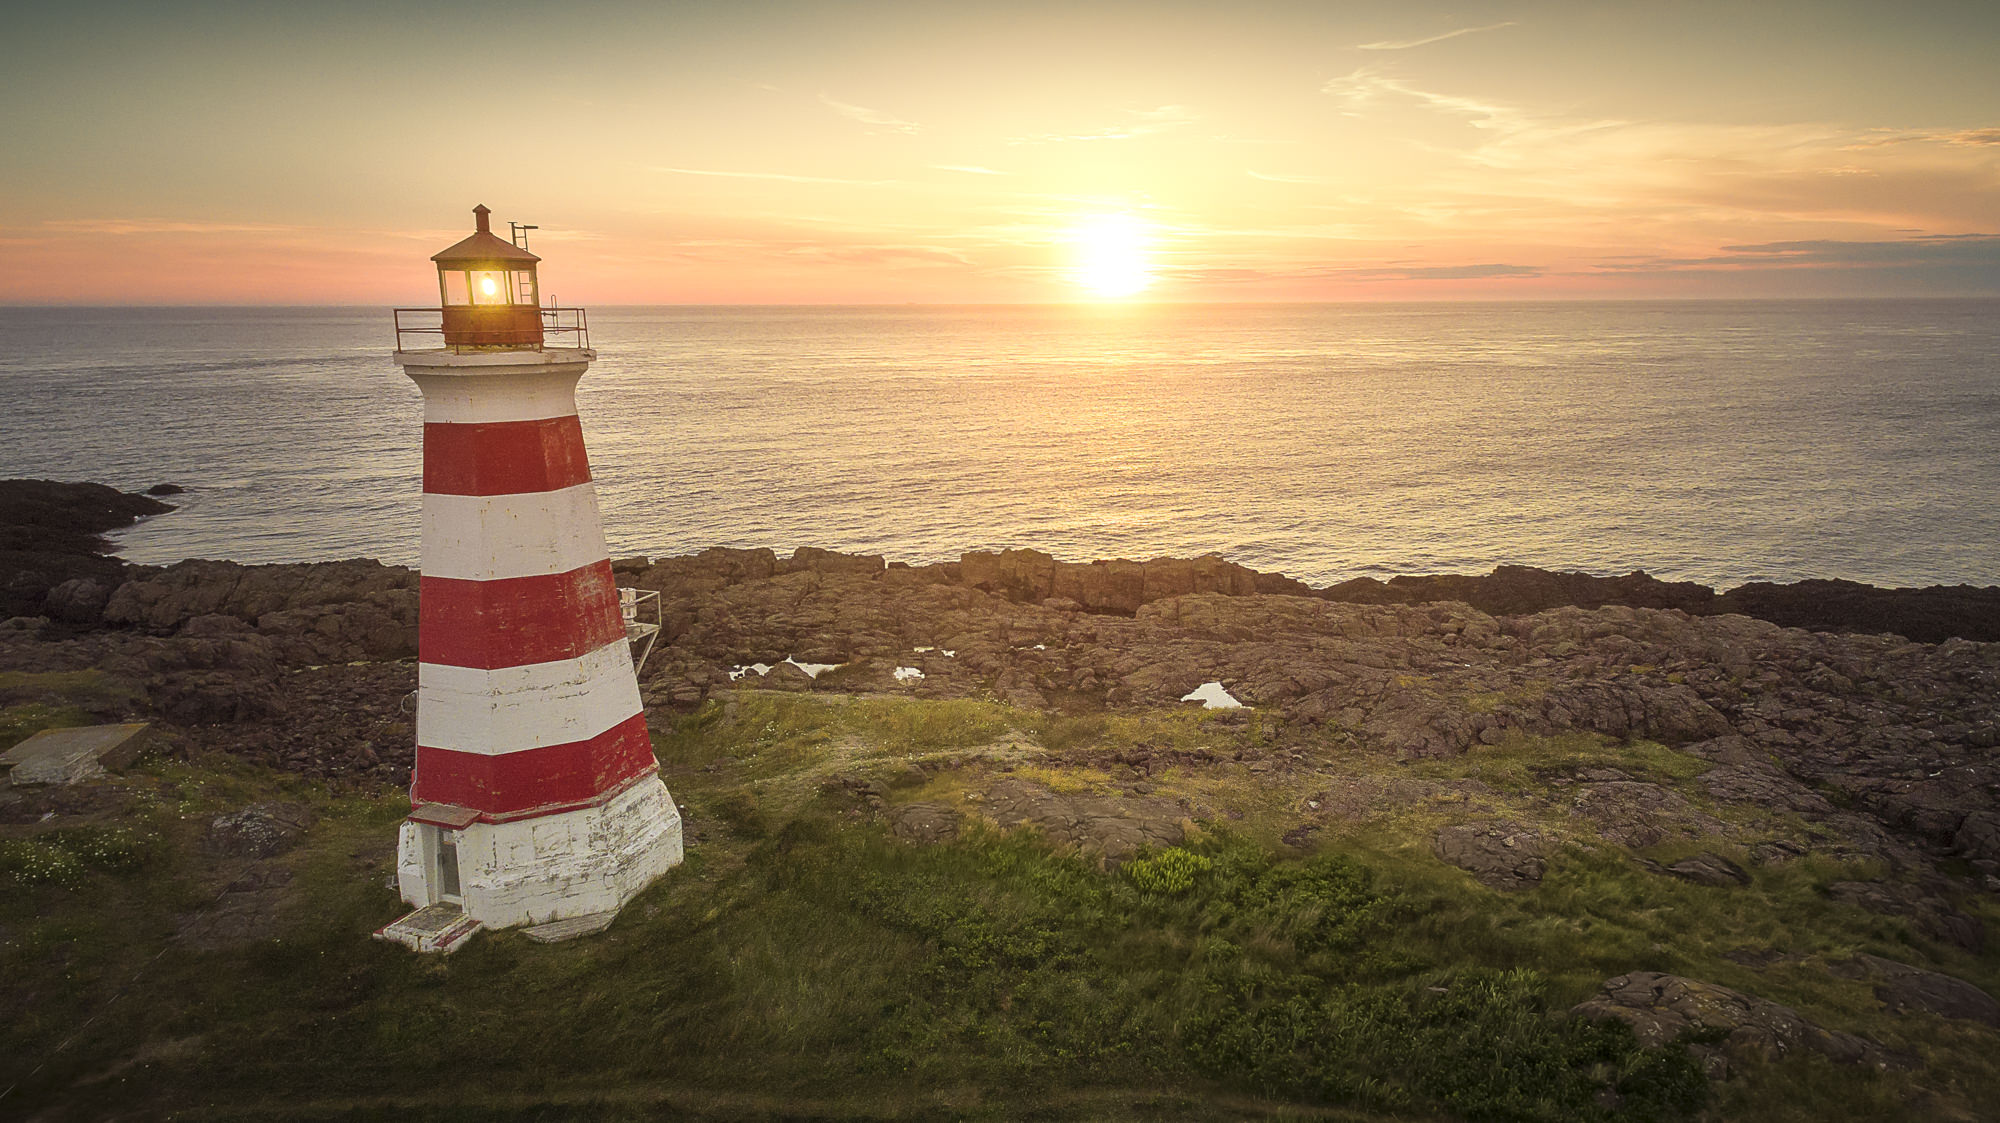 brier Island Lighthouse from drone.jpg